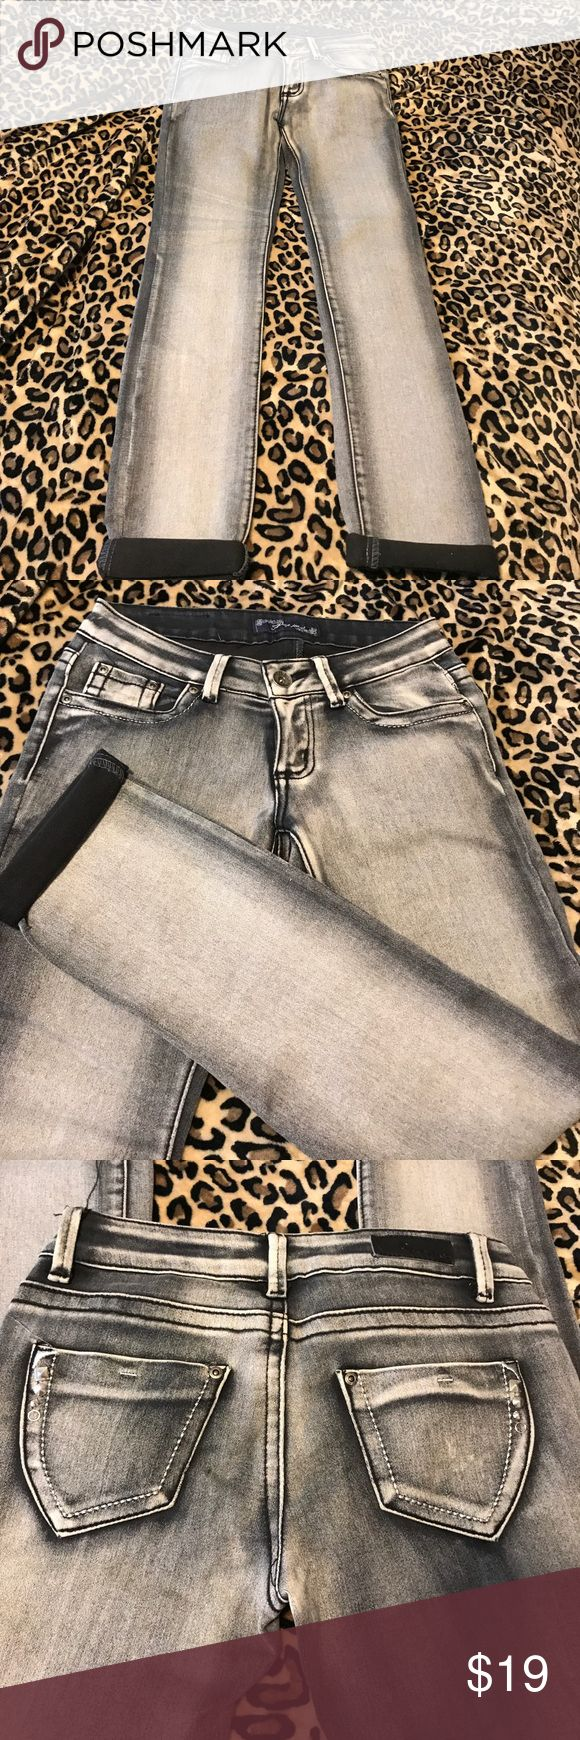 🔥Acid washed  jeans🔥 Black distressed stretchy skinny jeans cuffed pants leg with cute bling on the back pocket these are in excellent condition P&P Jeans Jeans Straight Leg